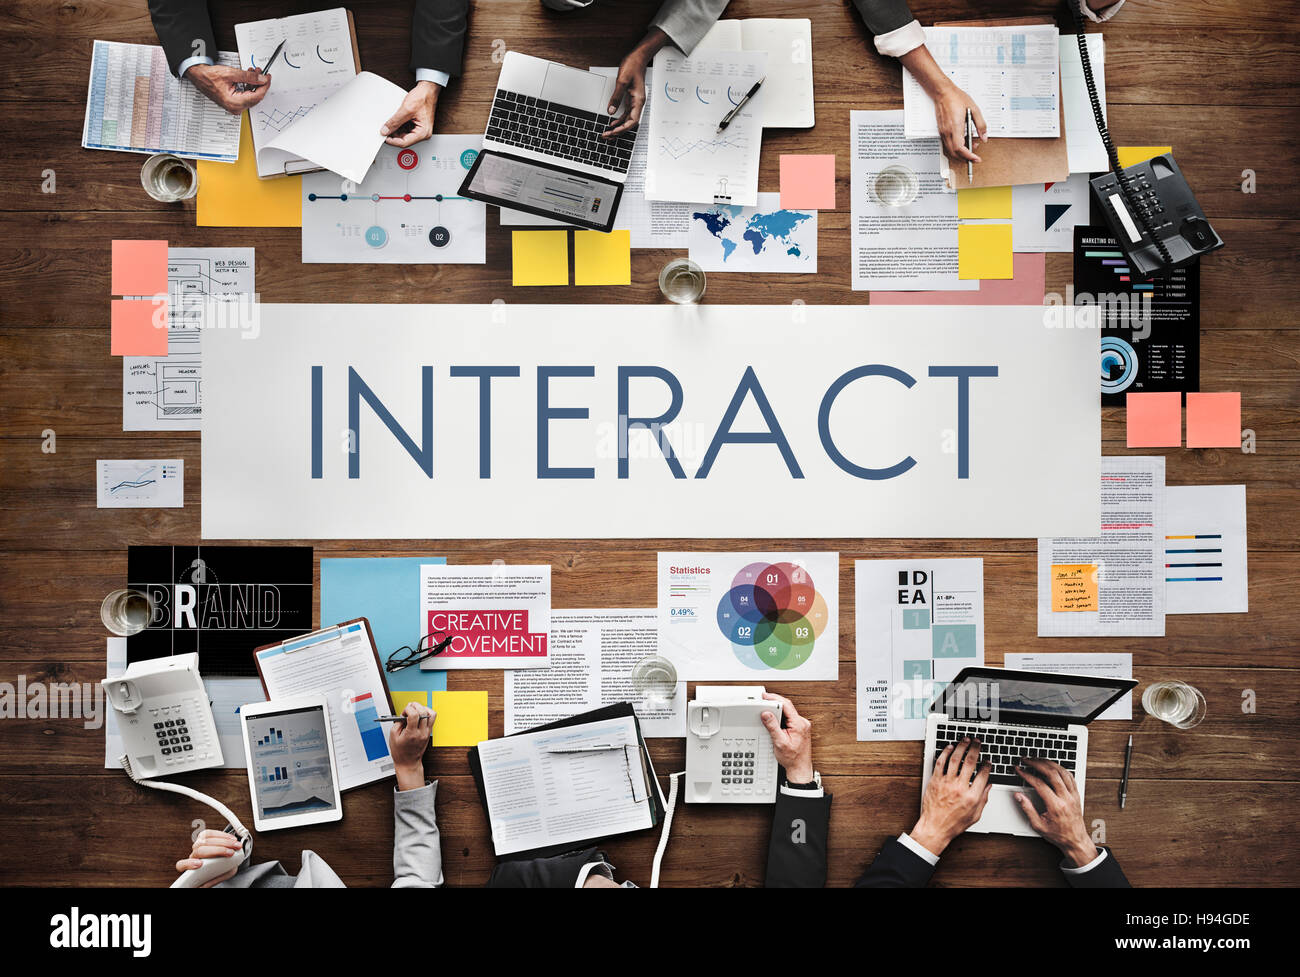 Interact Communication Connection Corporate Concept - Stock Image